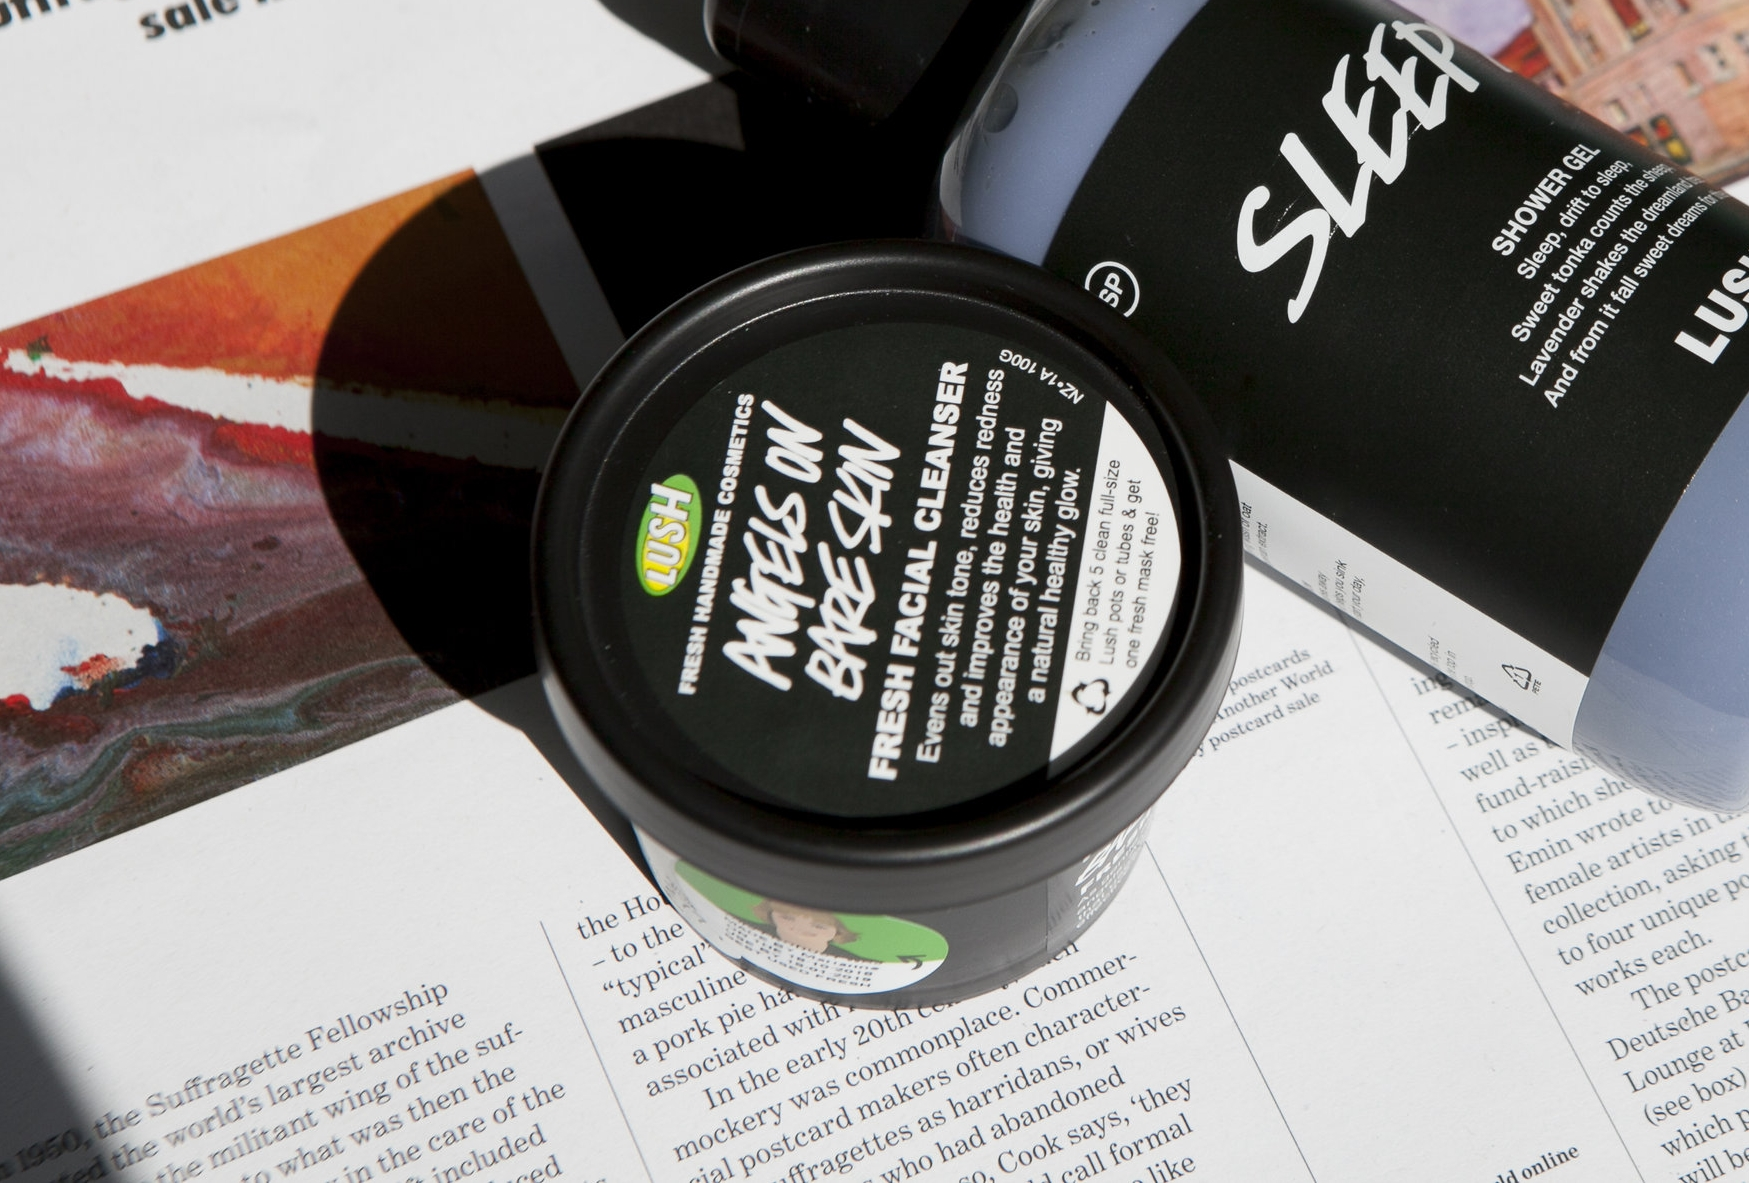 lush angel on bare skin review